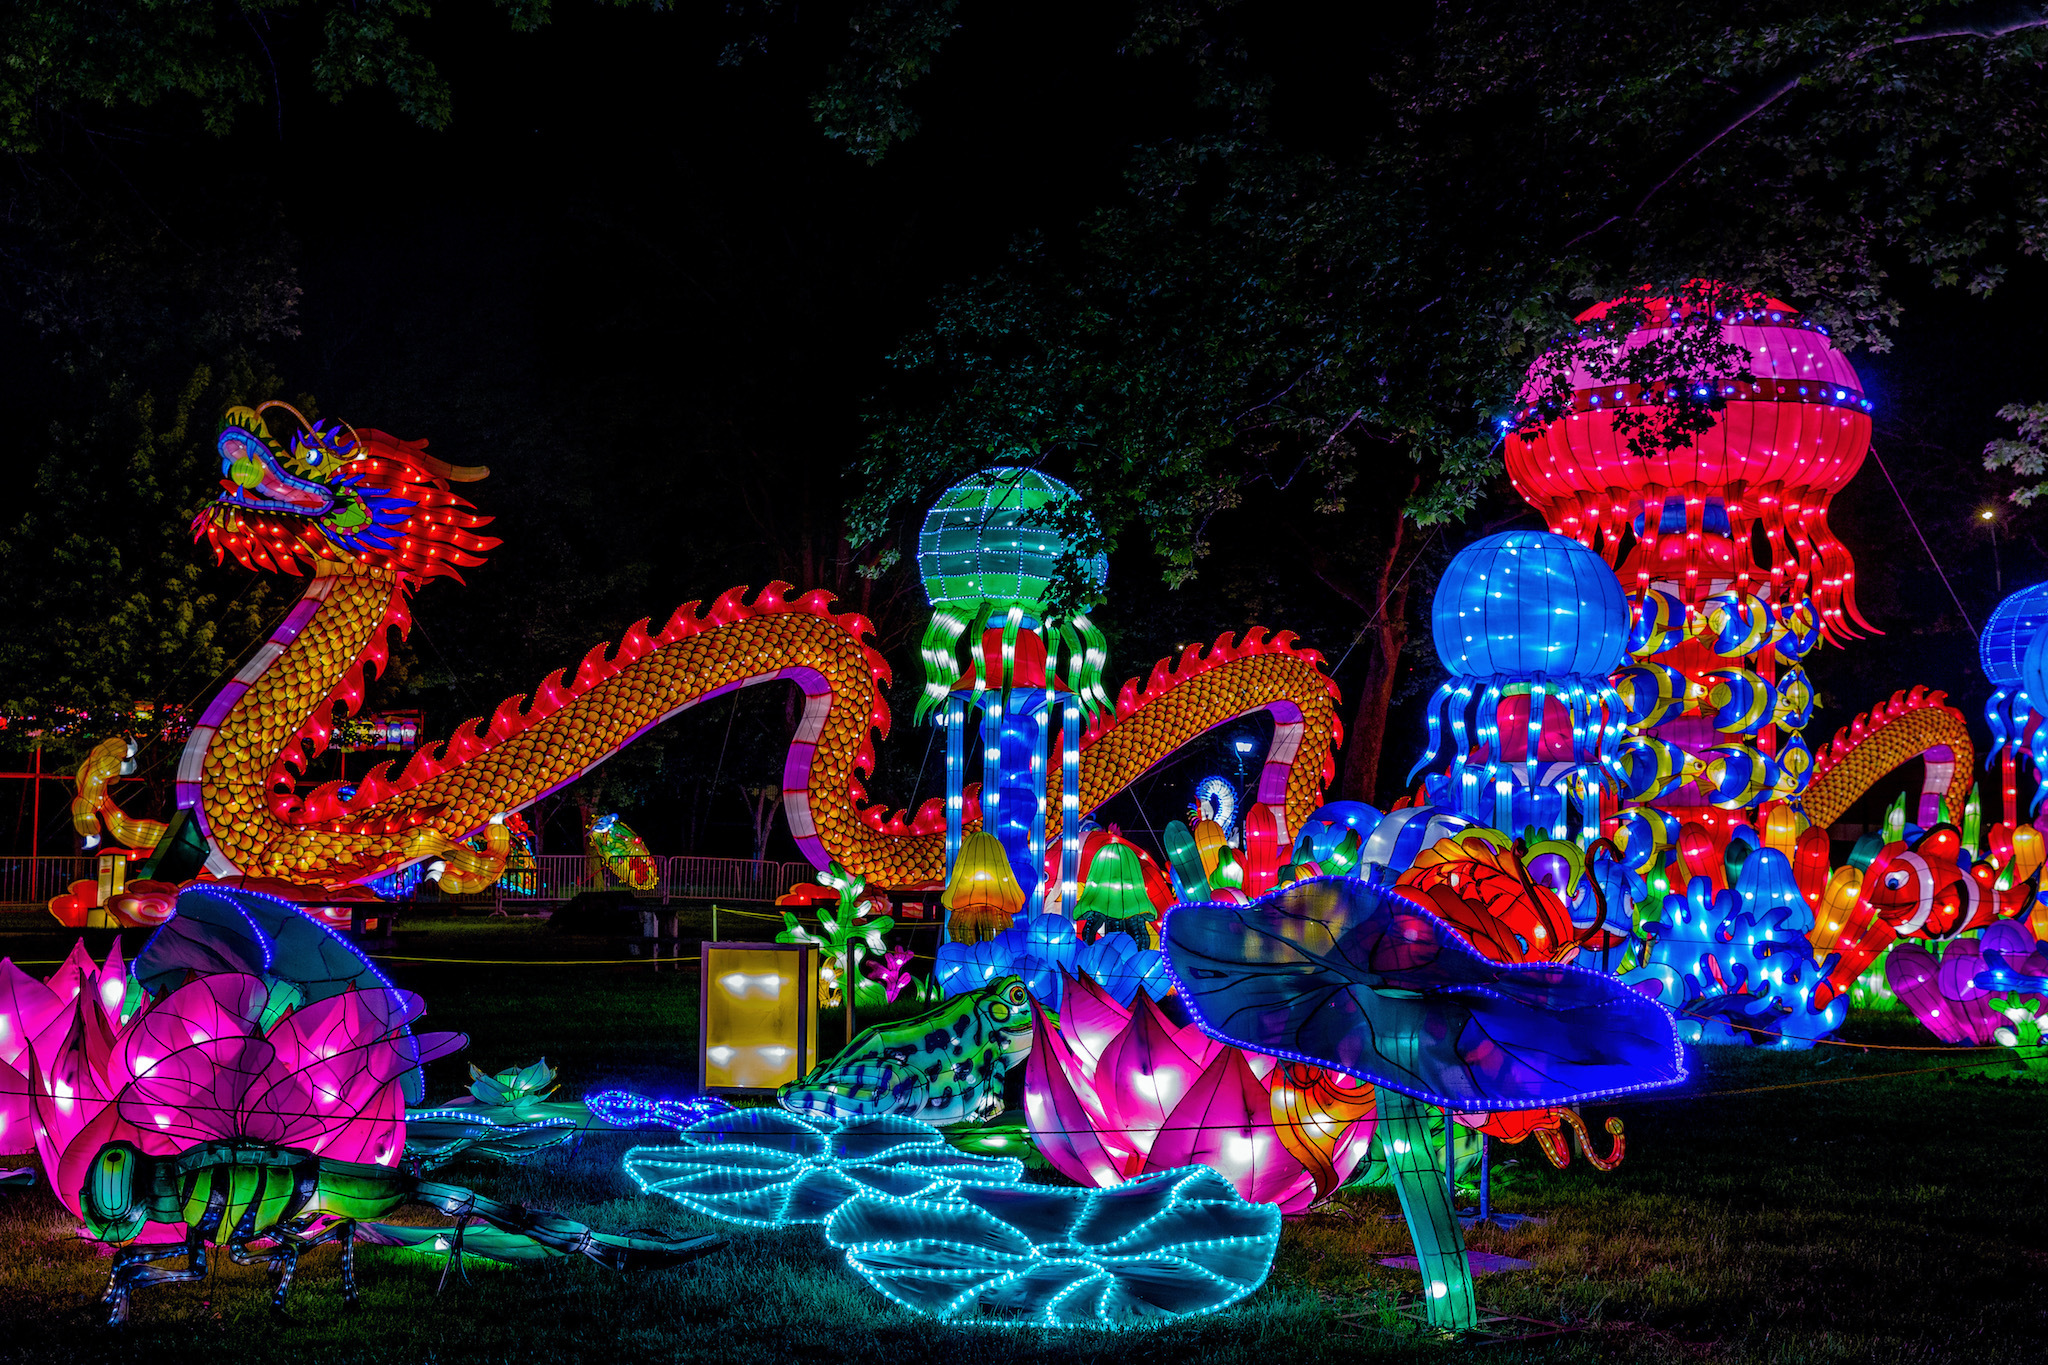 The Philadelphia Chinese Lantern Festival lights up Franklin Square this May and June